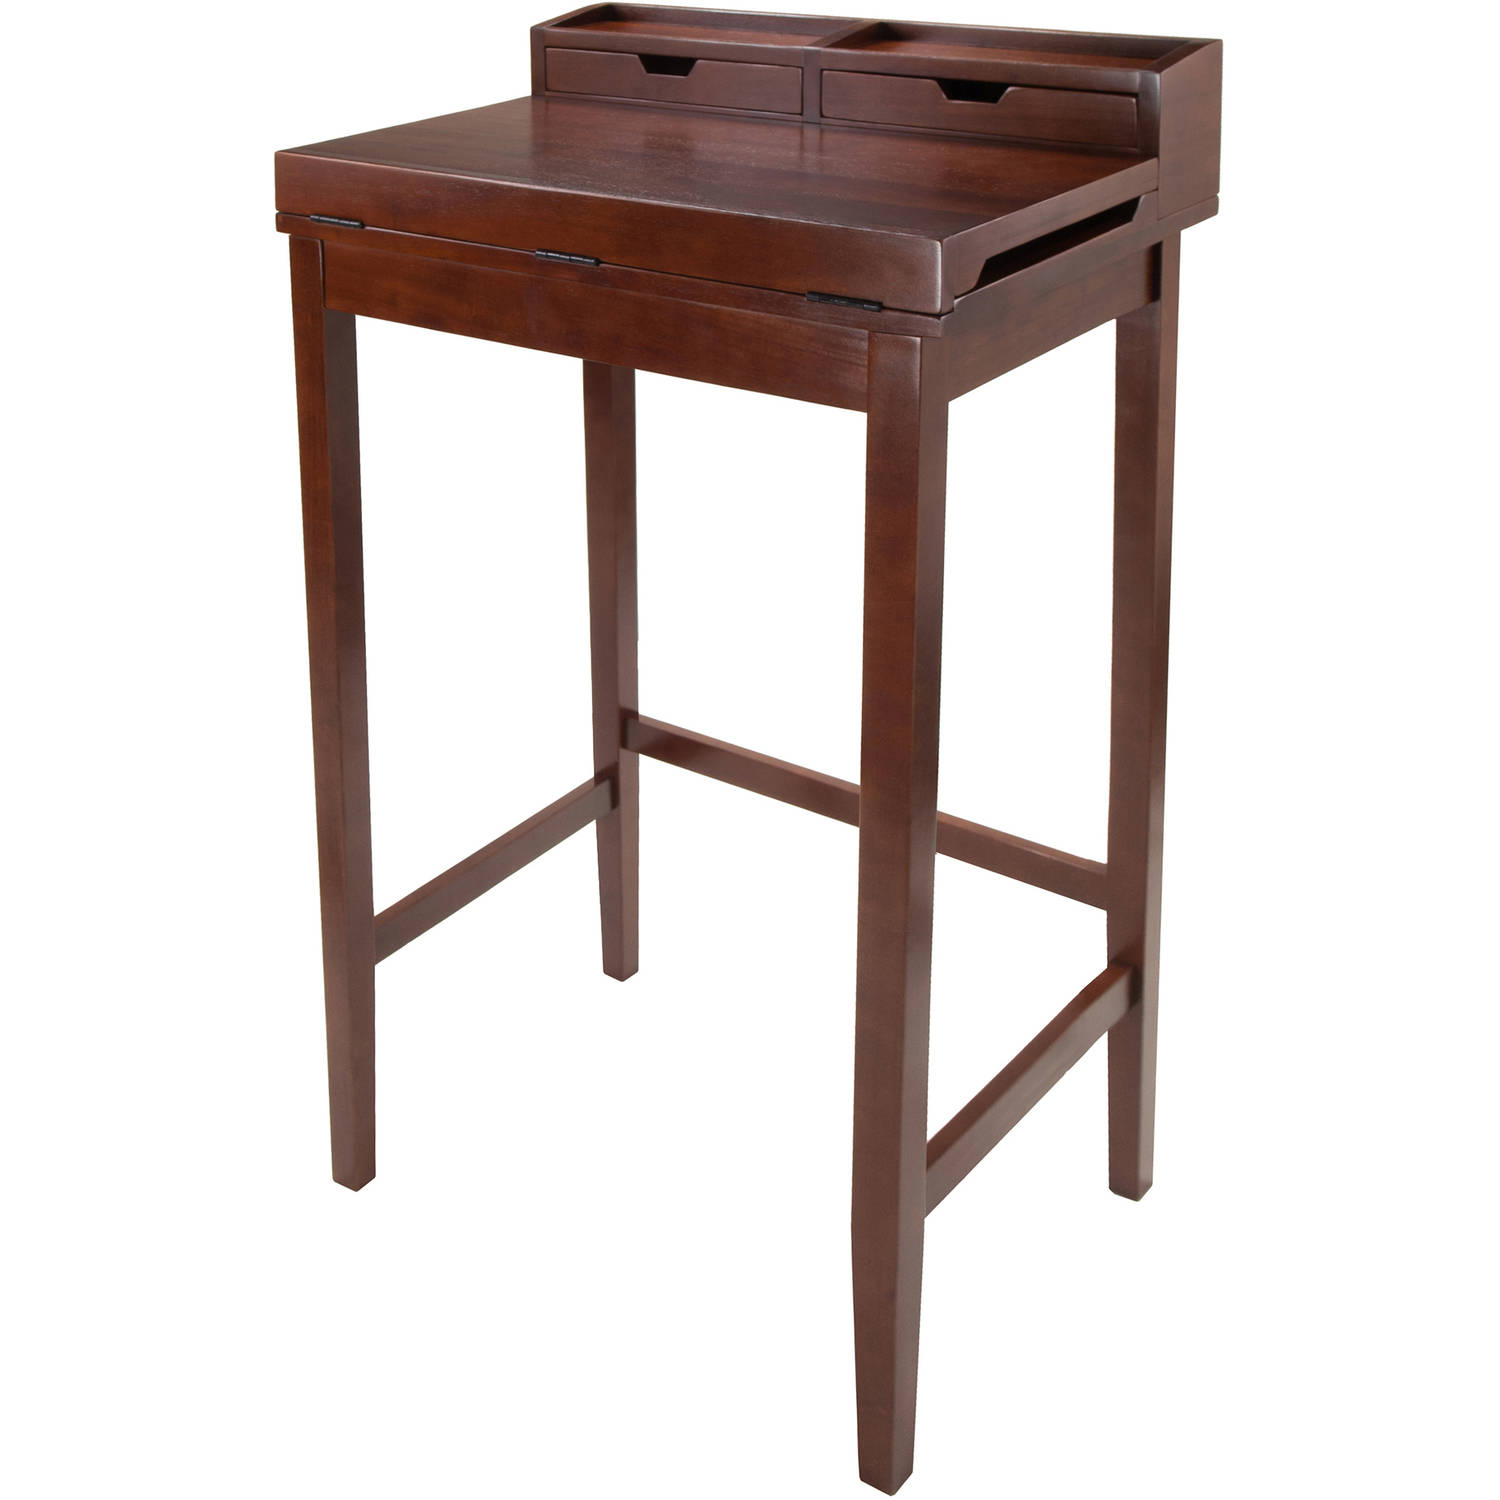 Winsome Wood Brighton Ergonomic High Desk, Walnut Finish